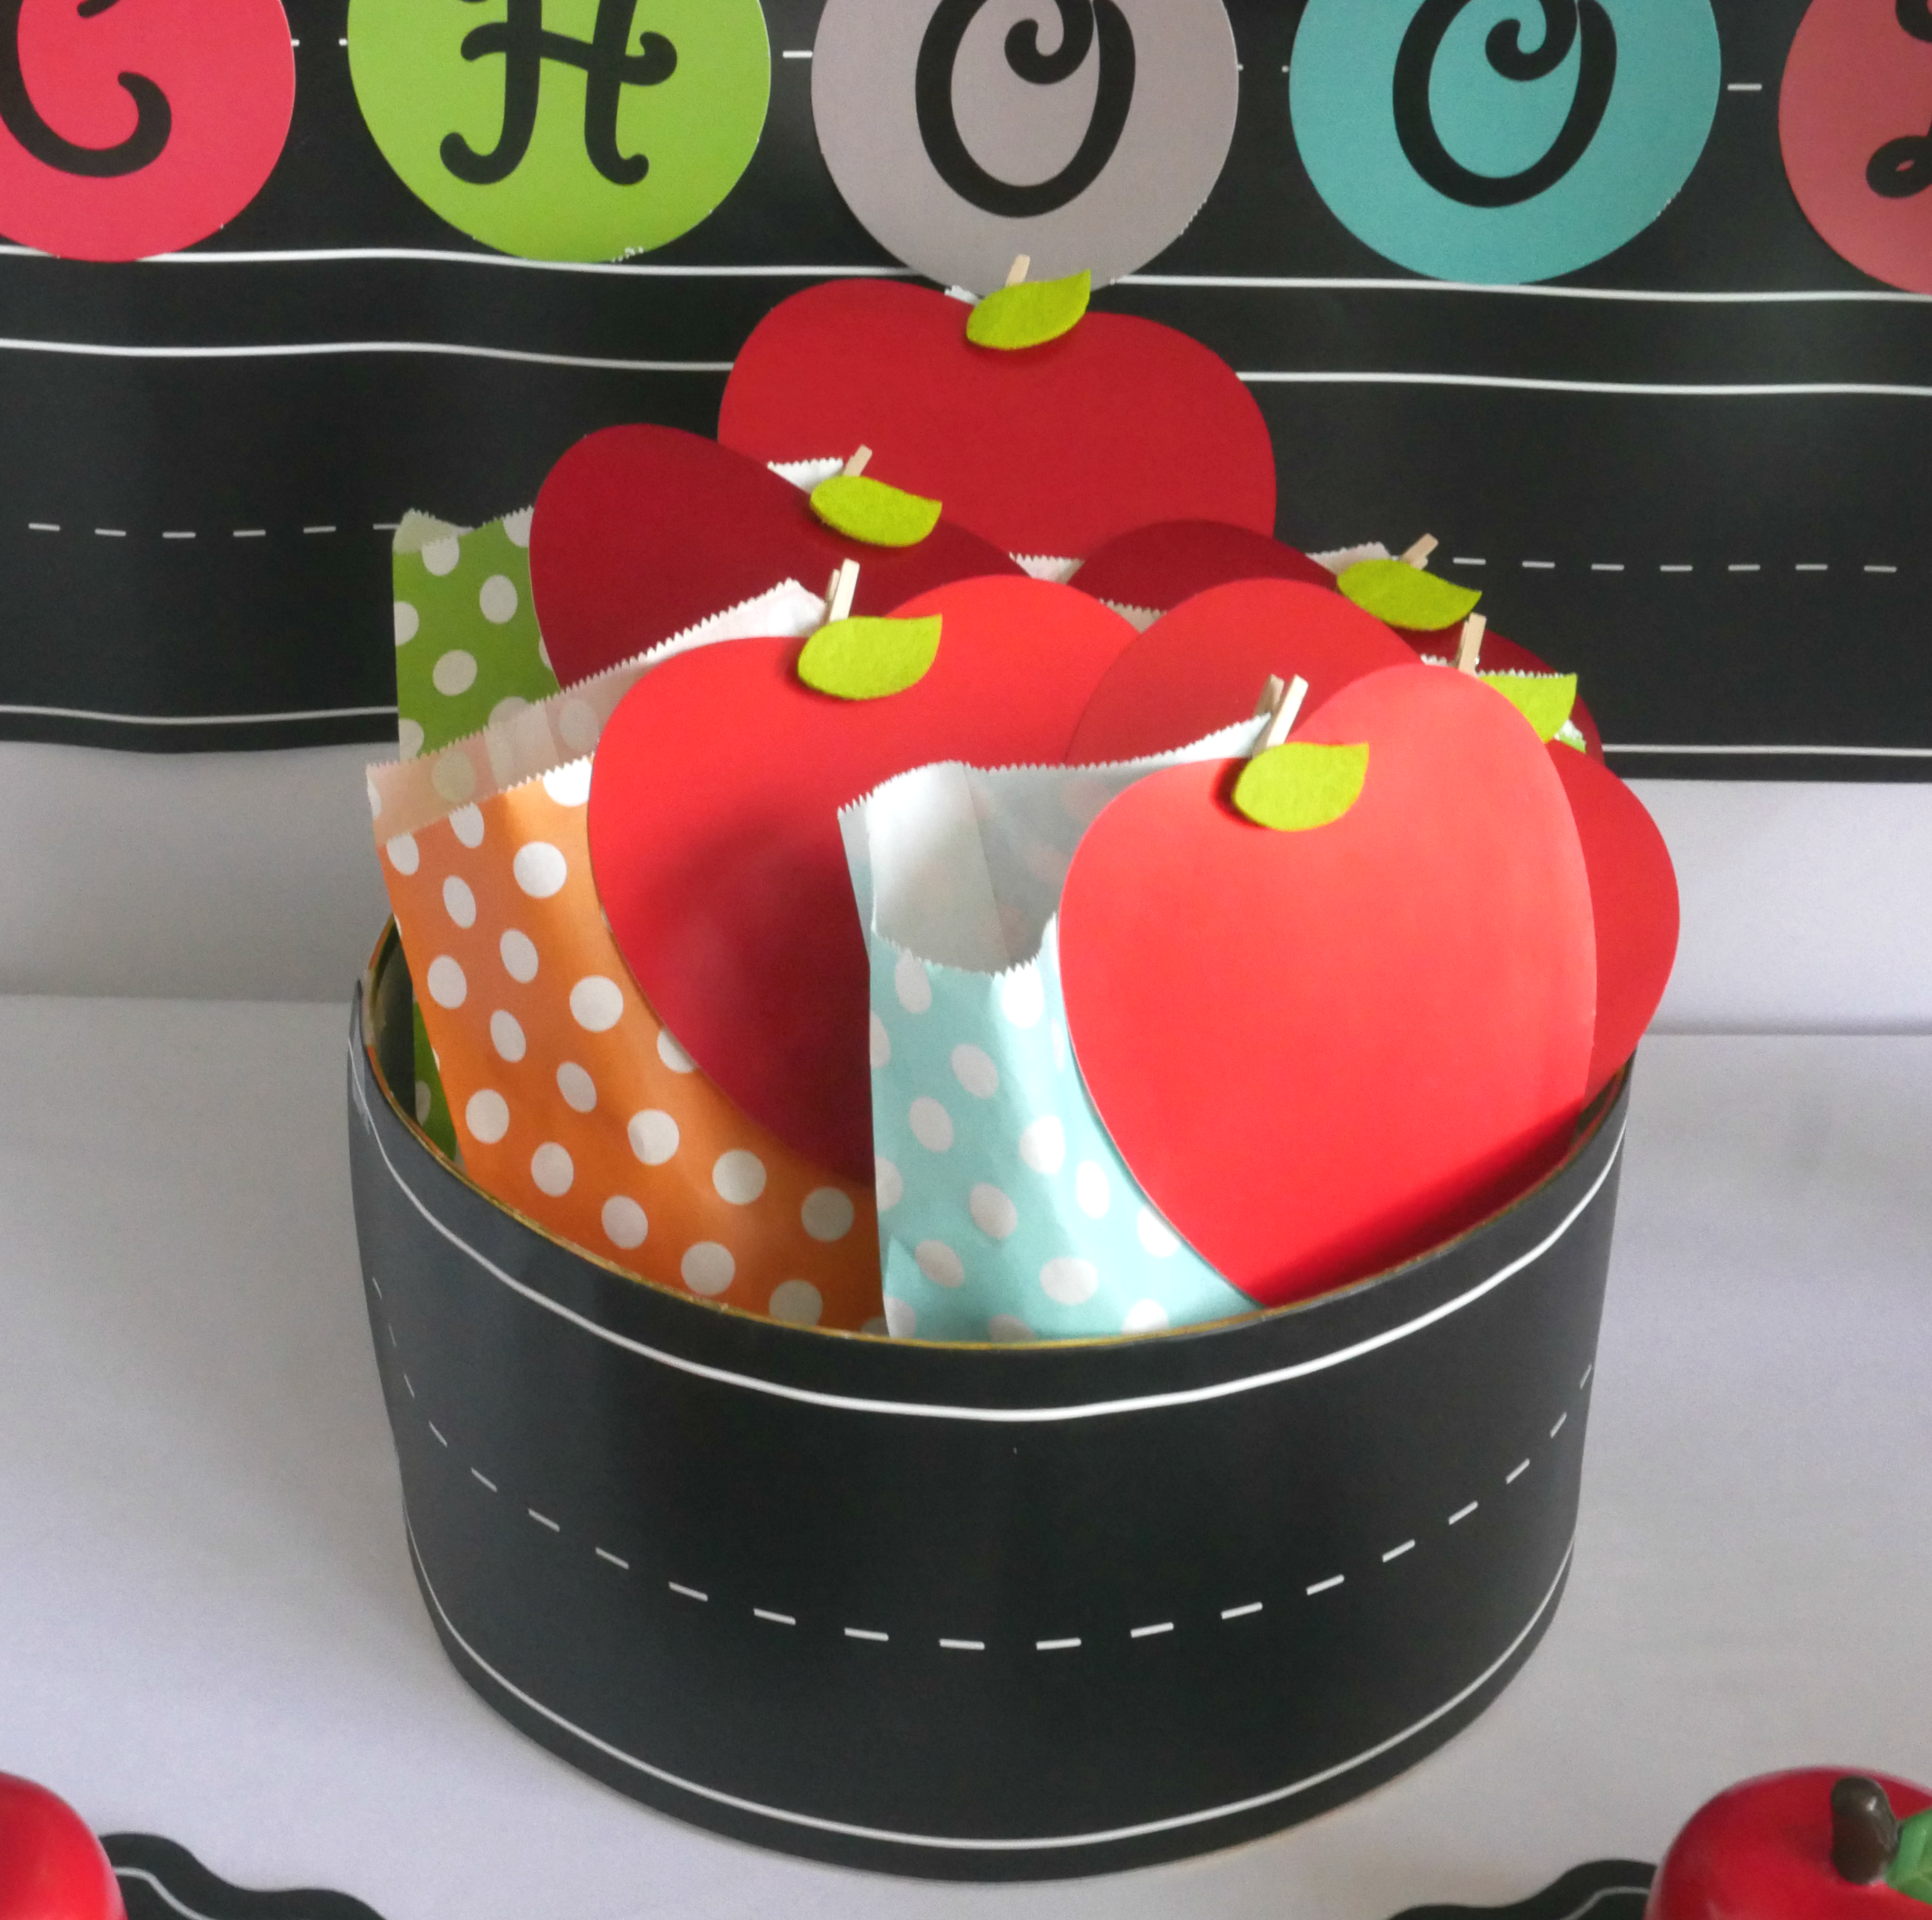 Cute Back to School party themed treat bags - simply use polka dot treat bags with cute apple bag toppers cut out of paper. See all the back to school party details on Mint Event Design www.minteventdesign.com #backtoschool #backtoschoolideas #kidsparty #kidspartyideas #kidsparties #partyfavors